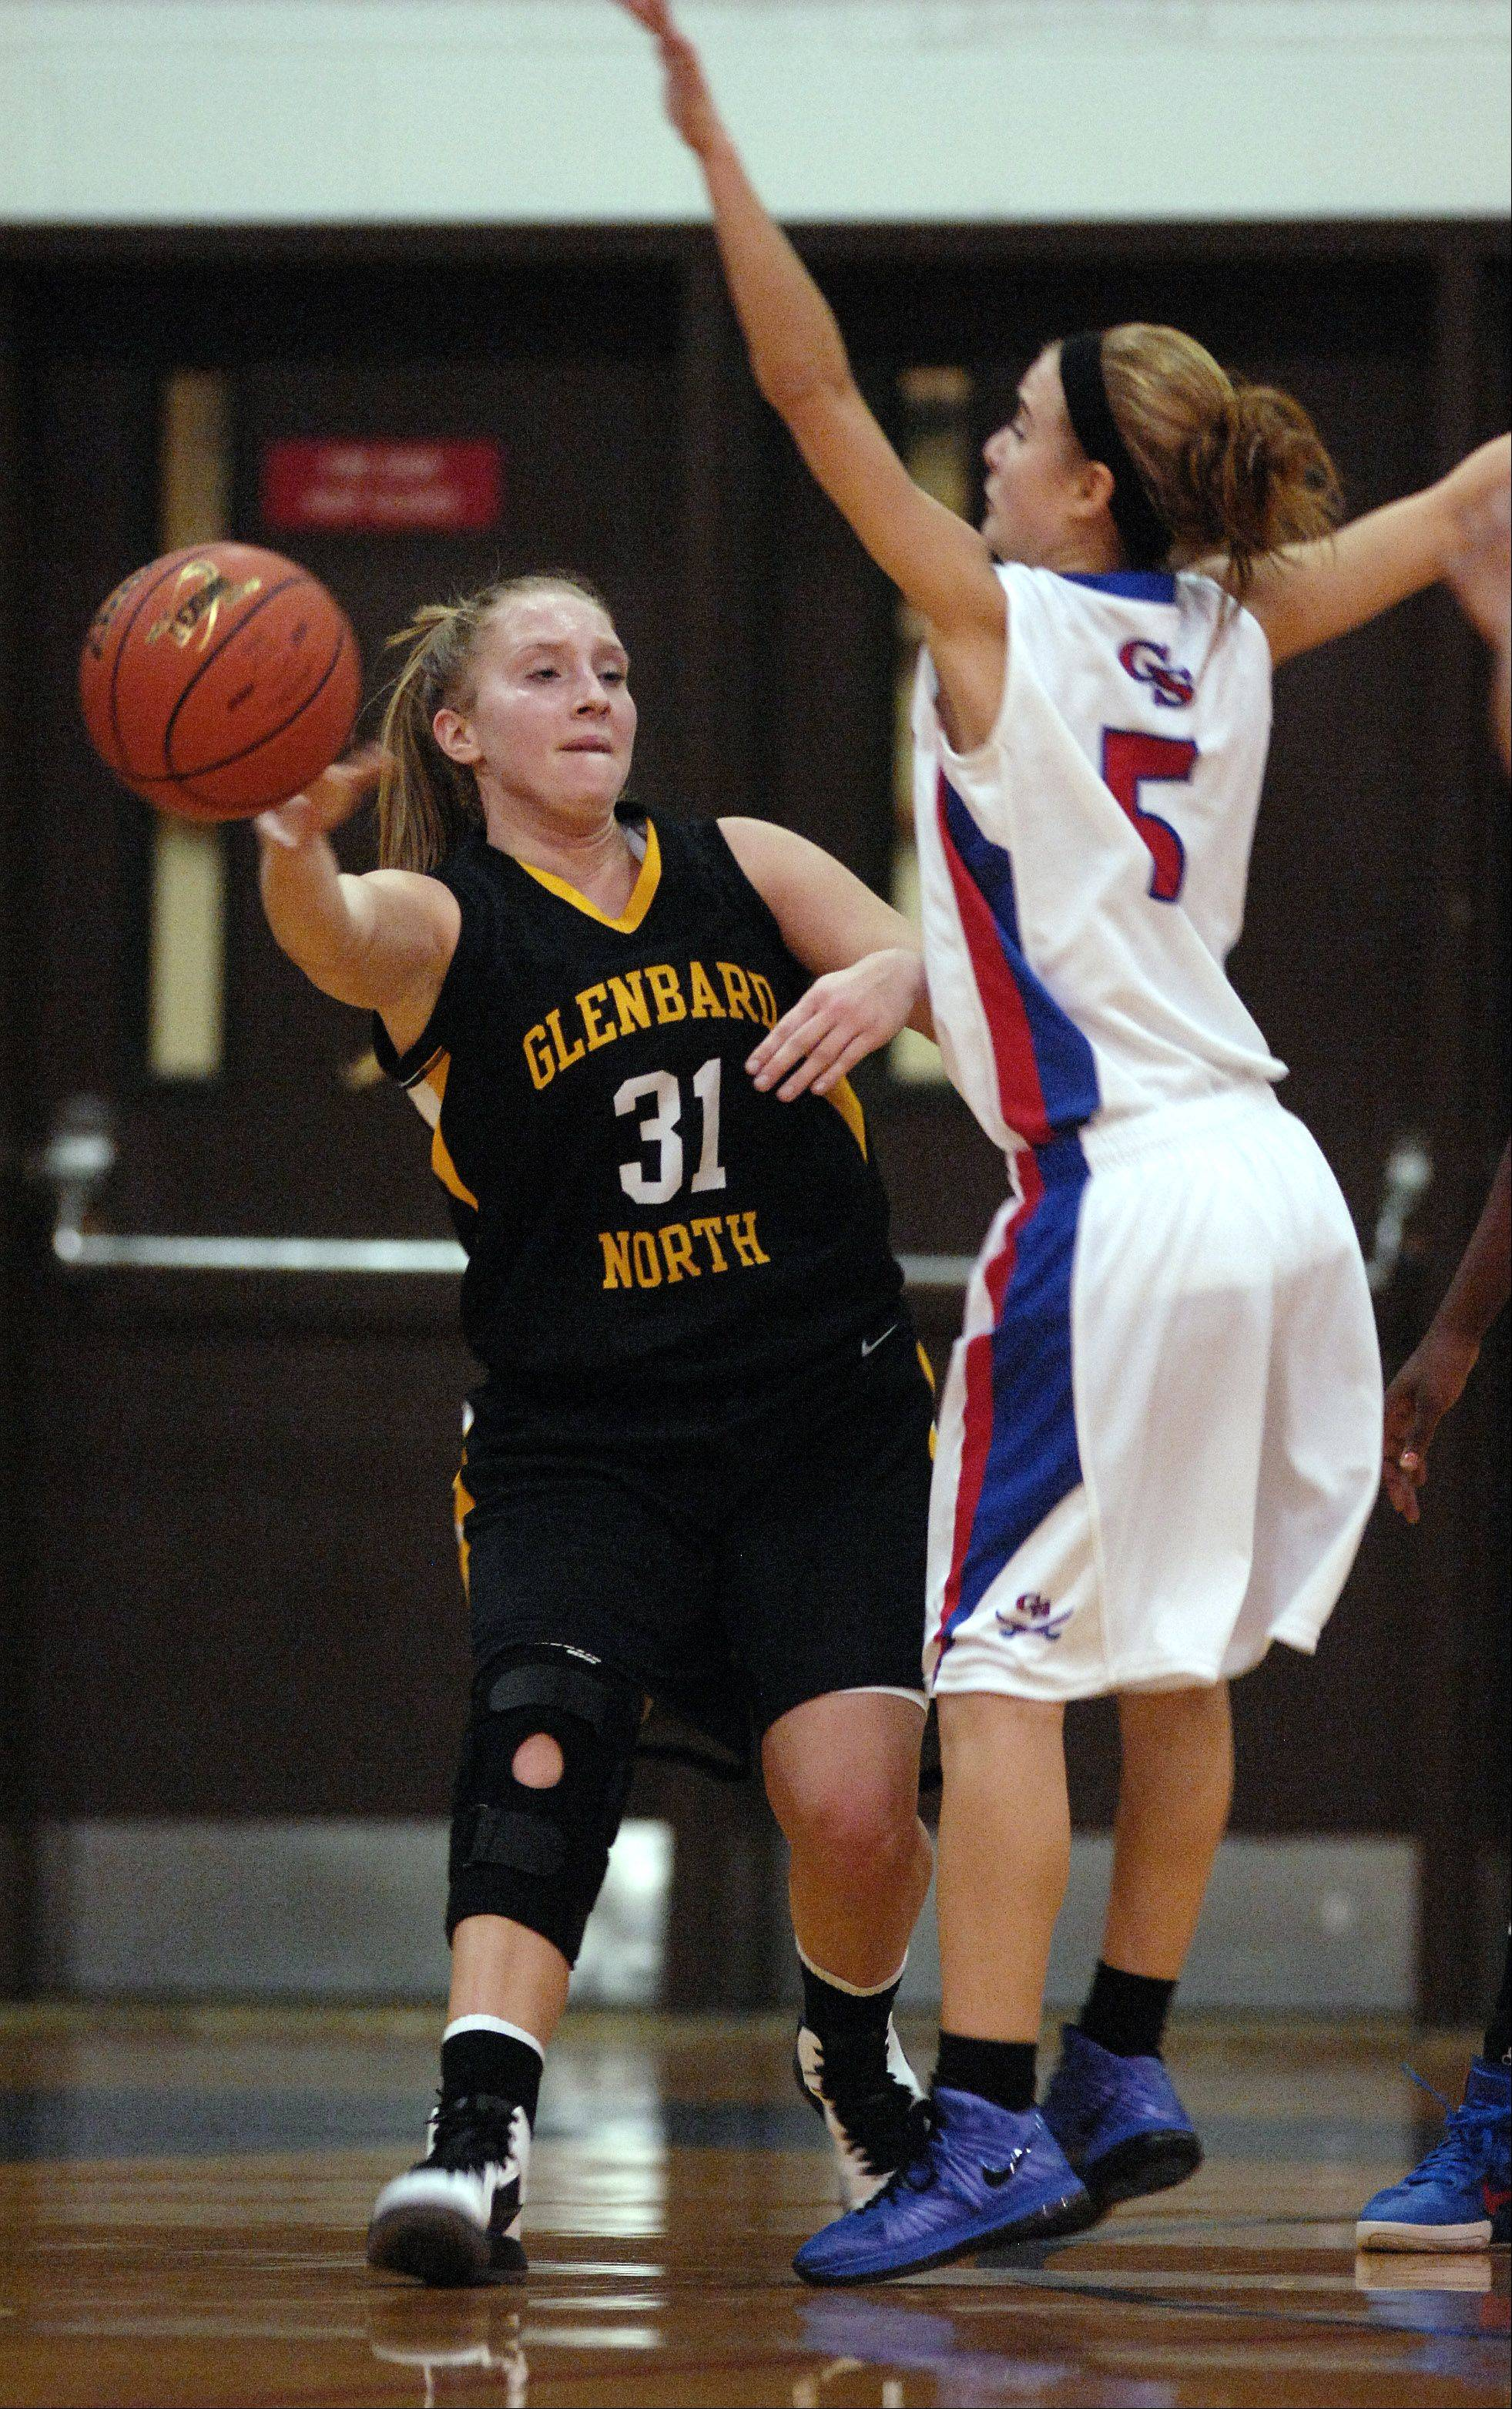 Glenbard North's Amy Flason passes around Glenbard South's Theresa Scheet during Tuesday's girls basketball game in Glen Ellyn.